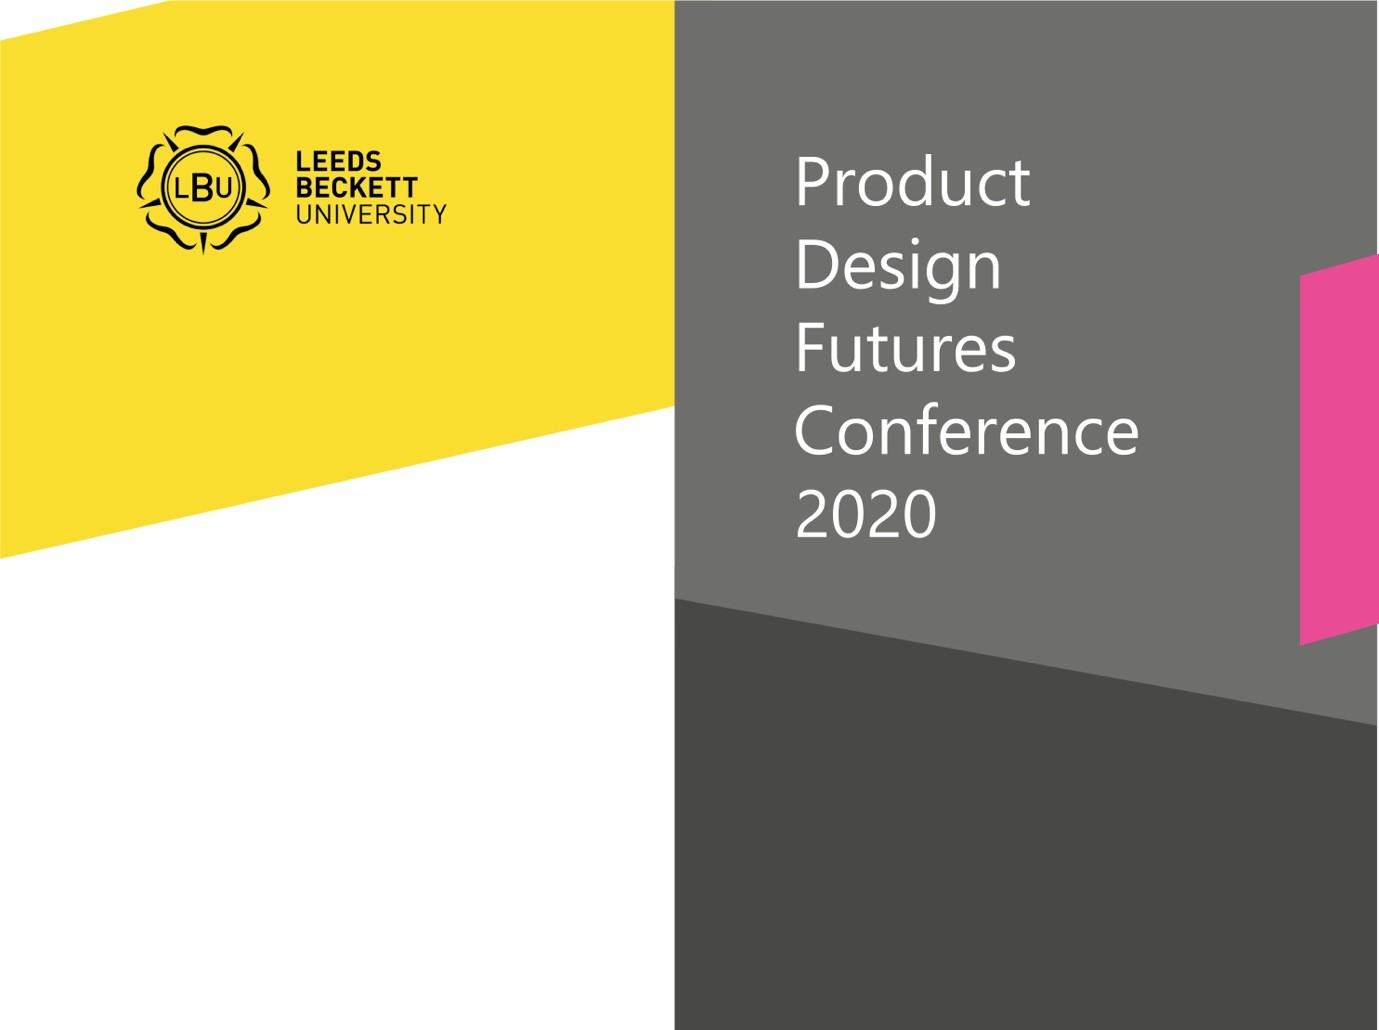 Product Design Futures Conference Poster - title arranged on top of coloured blocks